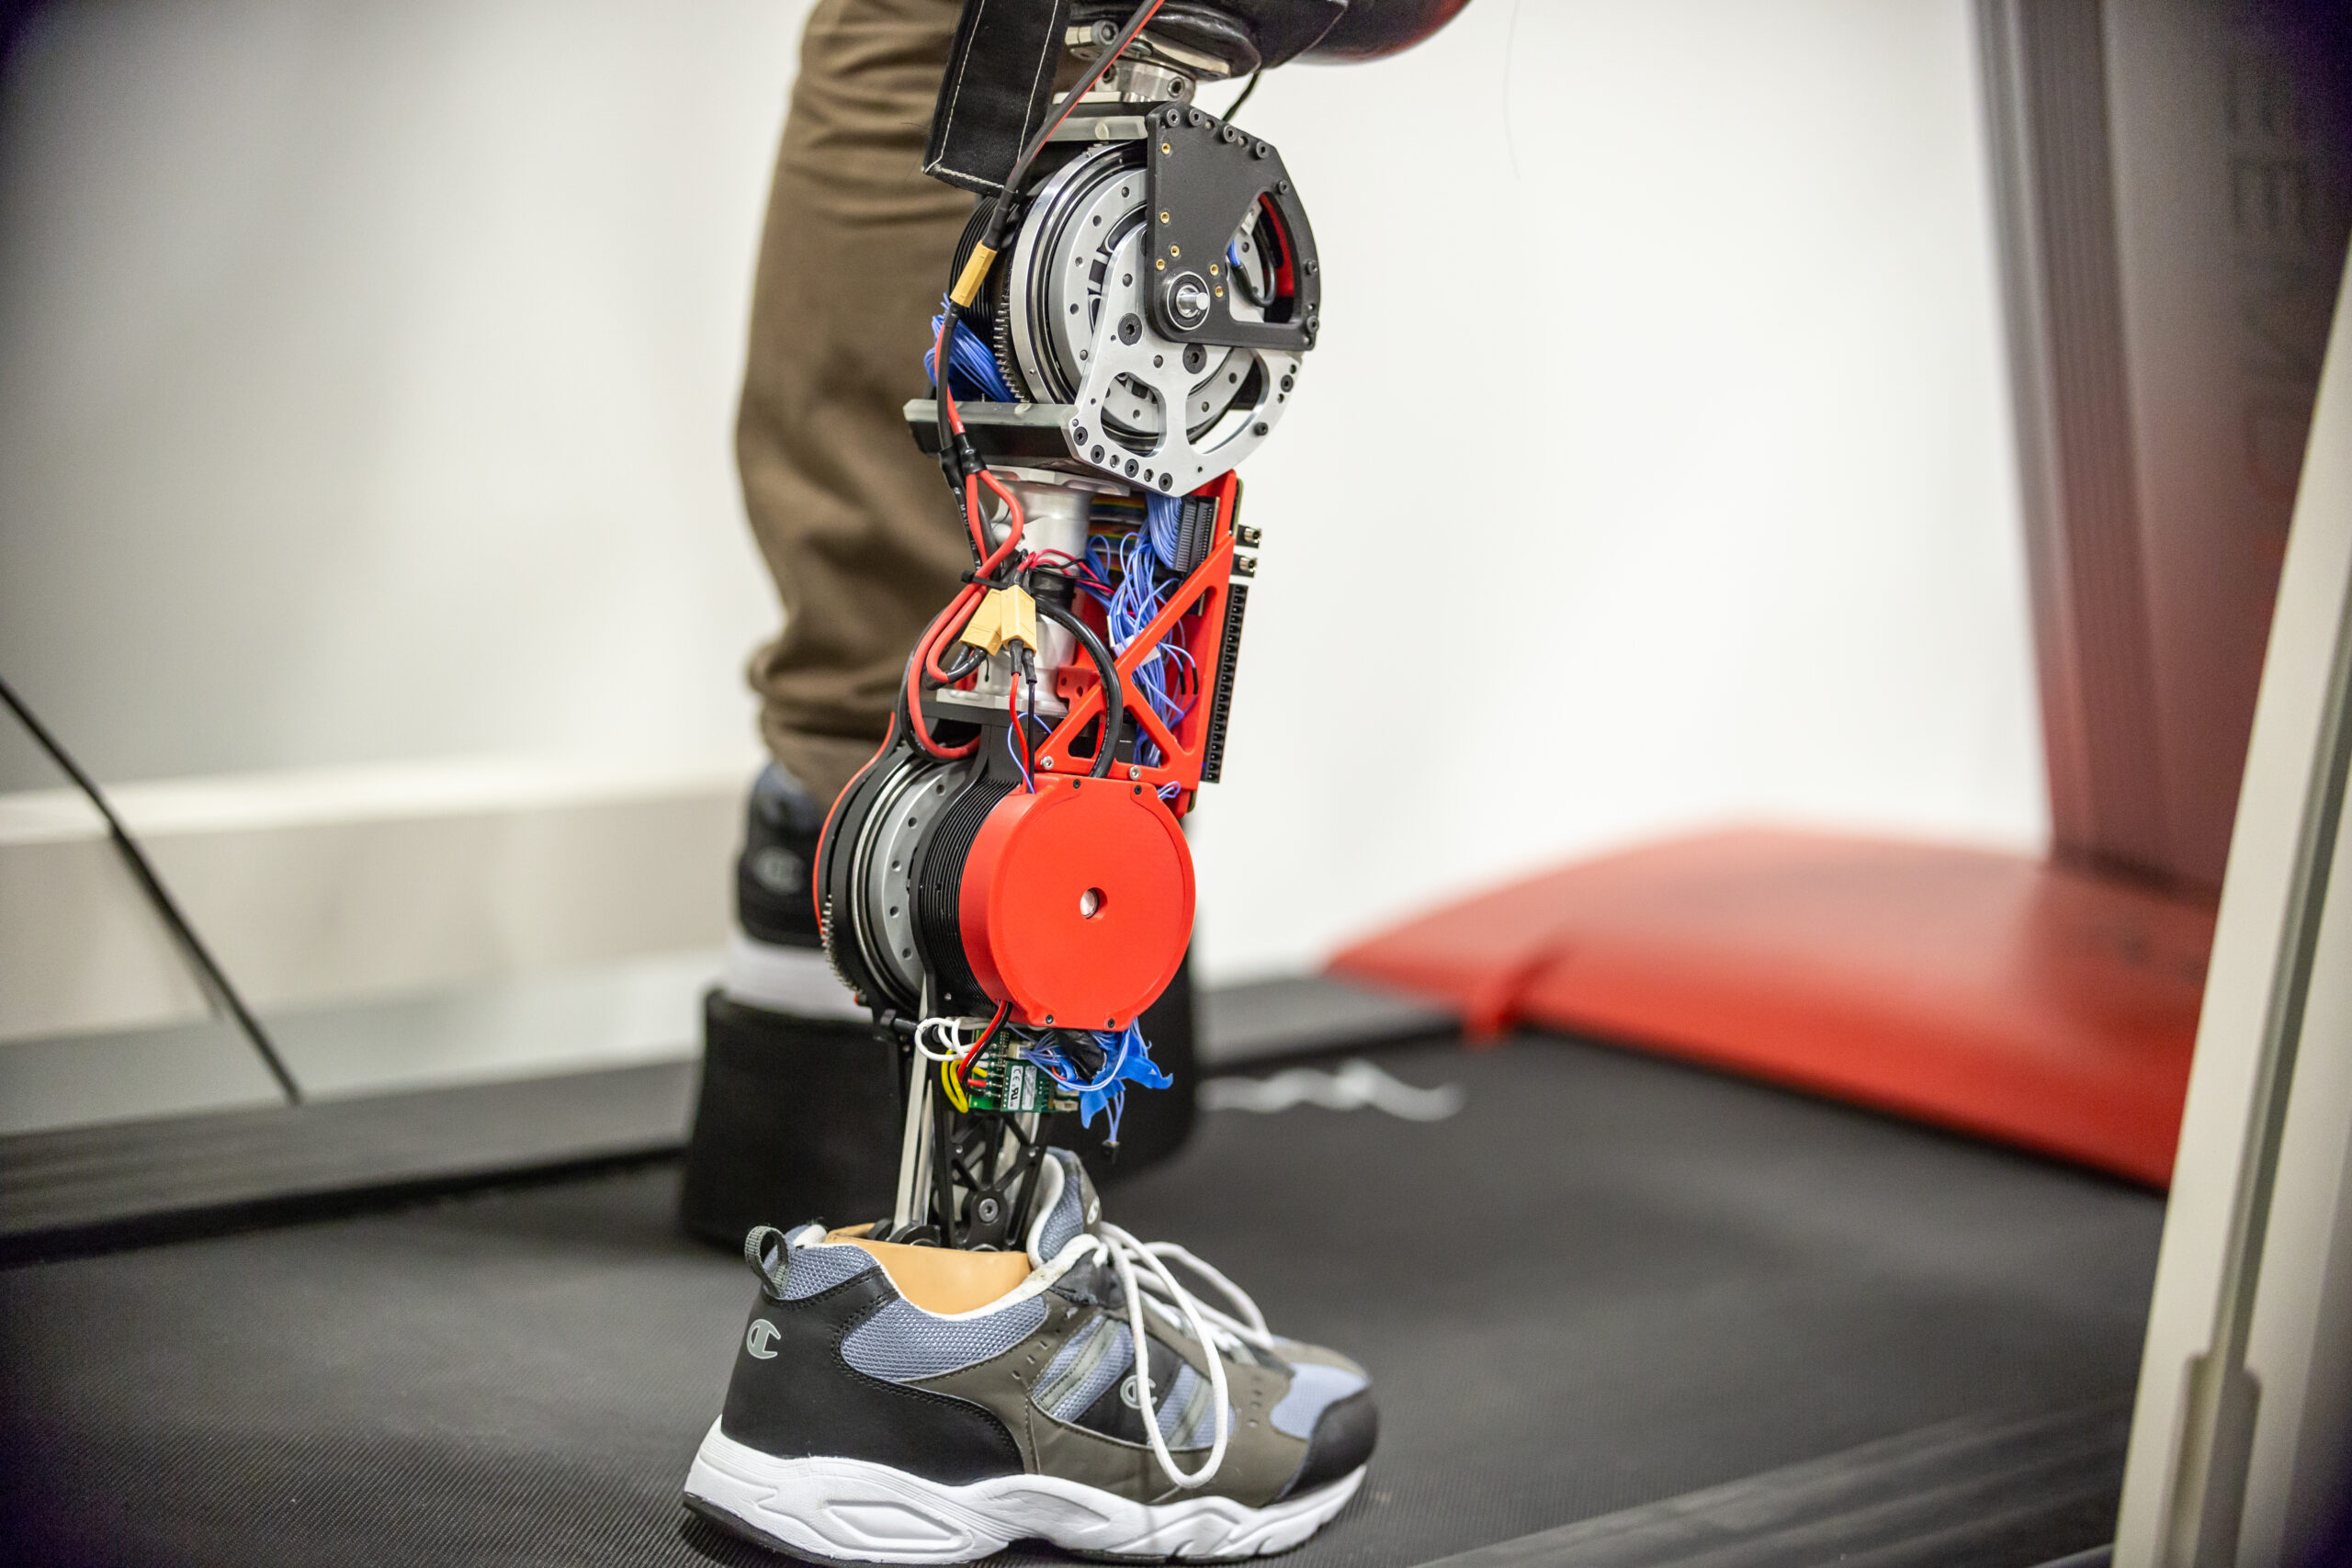 A student tests the robotic leg at the University of Texas at Dallas. The strong motors powering the knee and ankle can propel the user's body while allowing the knee to swing freely, with regenerative braking to extend battery life. Image credit: University of Texas at Dallas